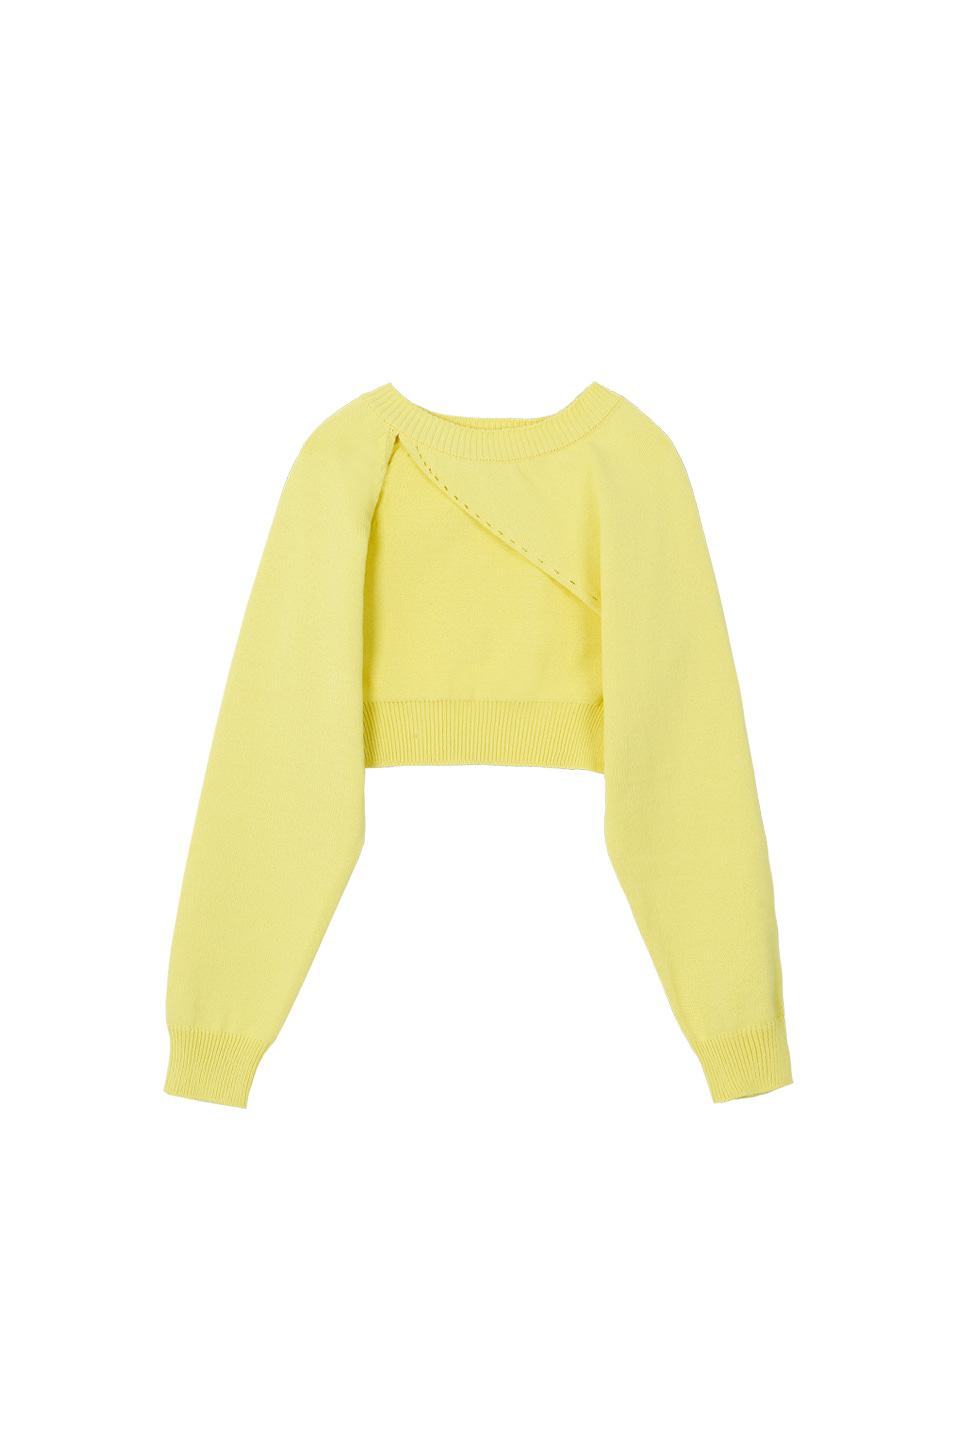 (2차재입고) SS UNBALANCE BOLERO KNIT TOP - LIGHT YELLOW (4/26일 예약배송)